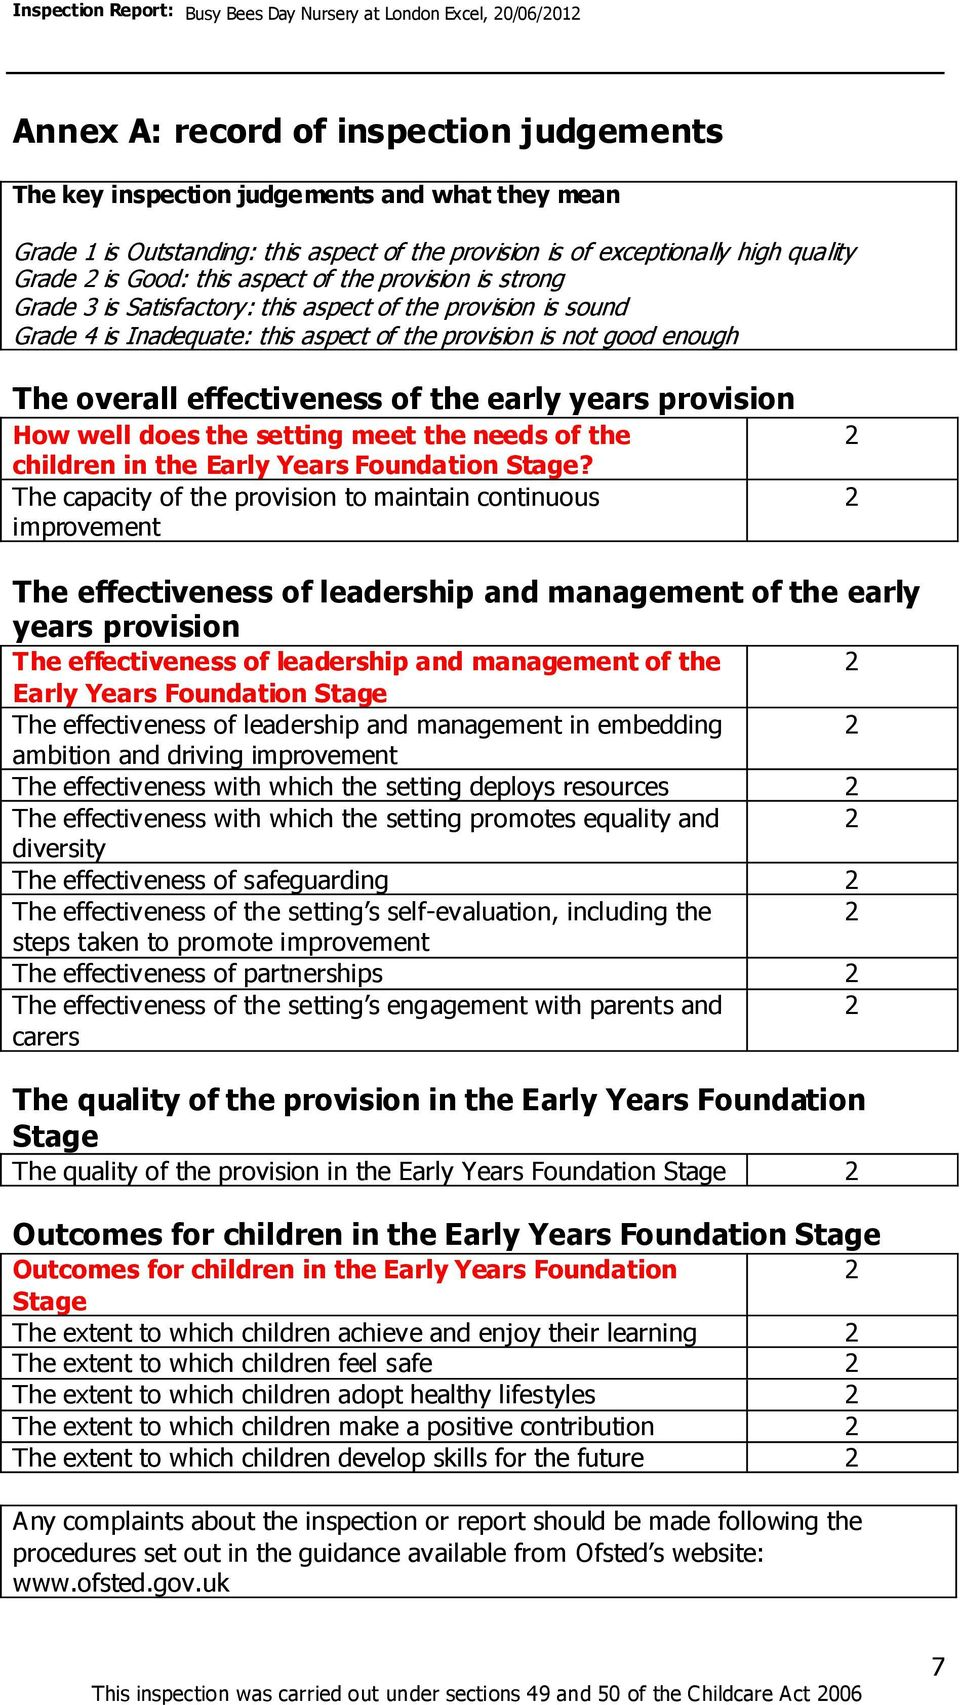 the early years provision How well does the setting meet the needs of the children in the Early Years Foundation Stage?